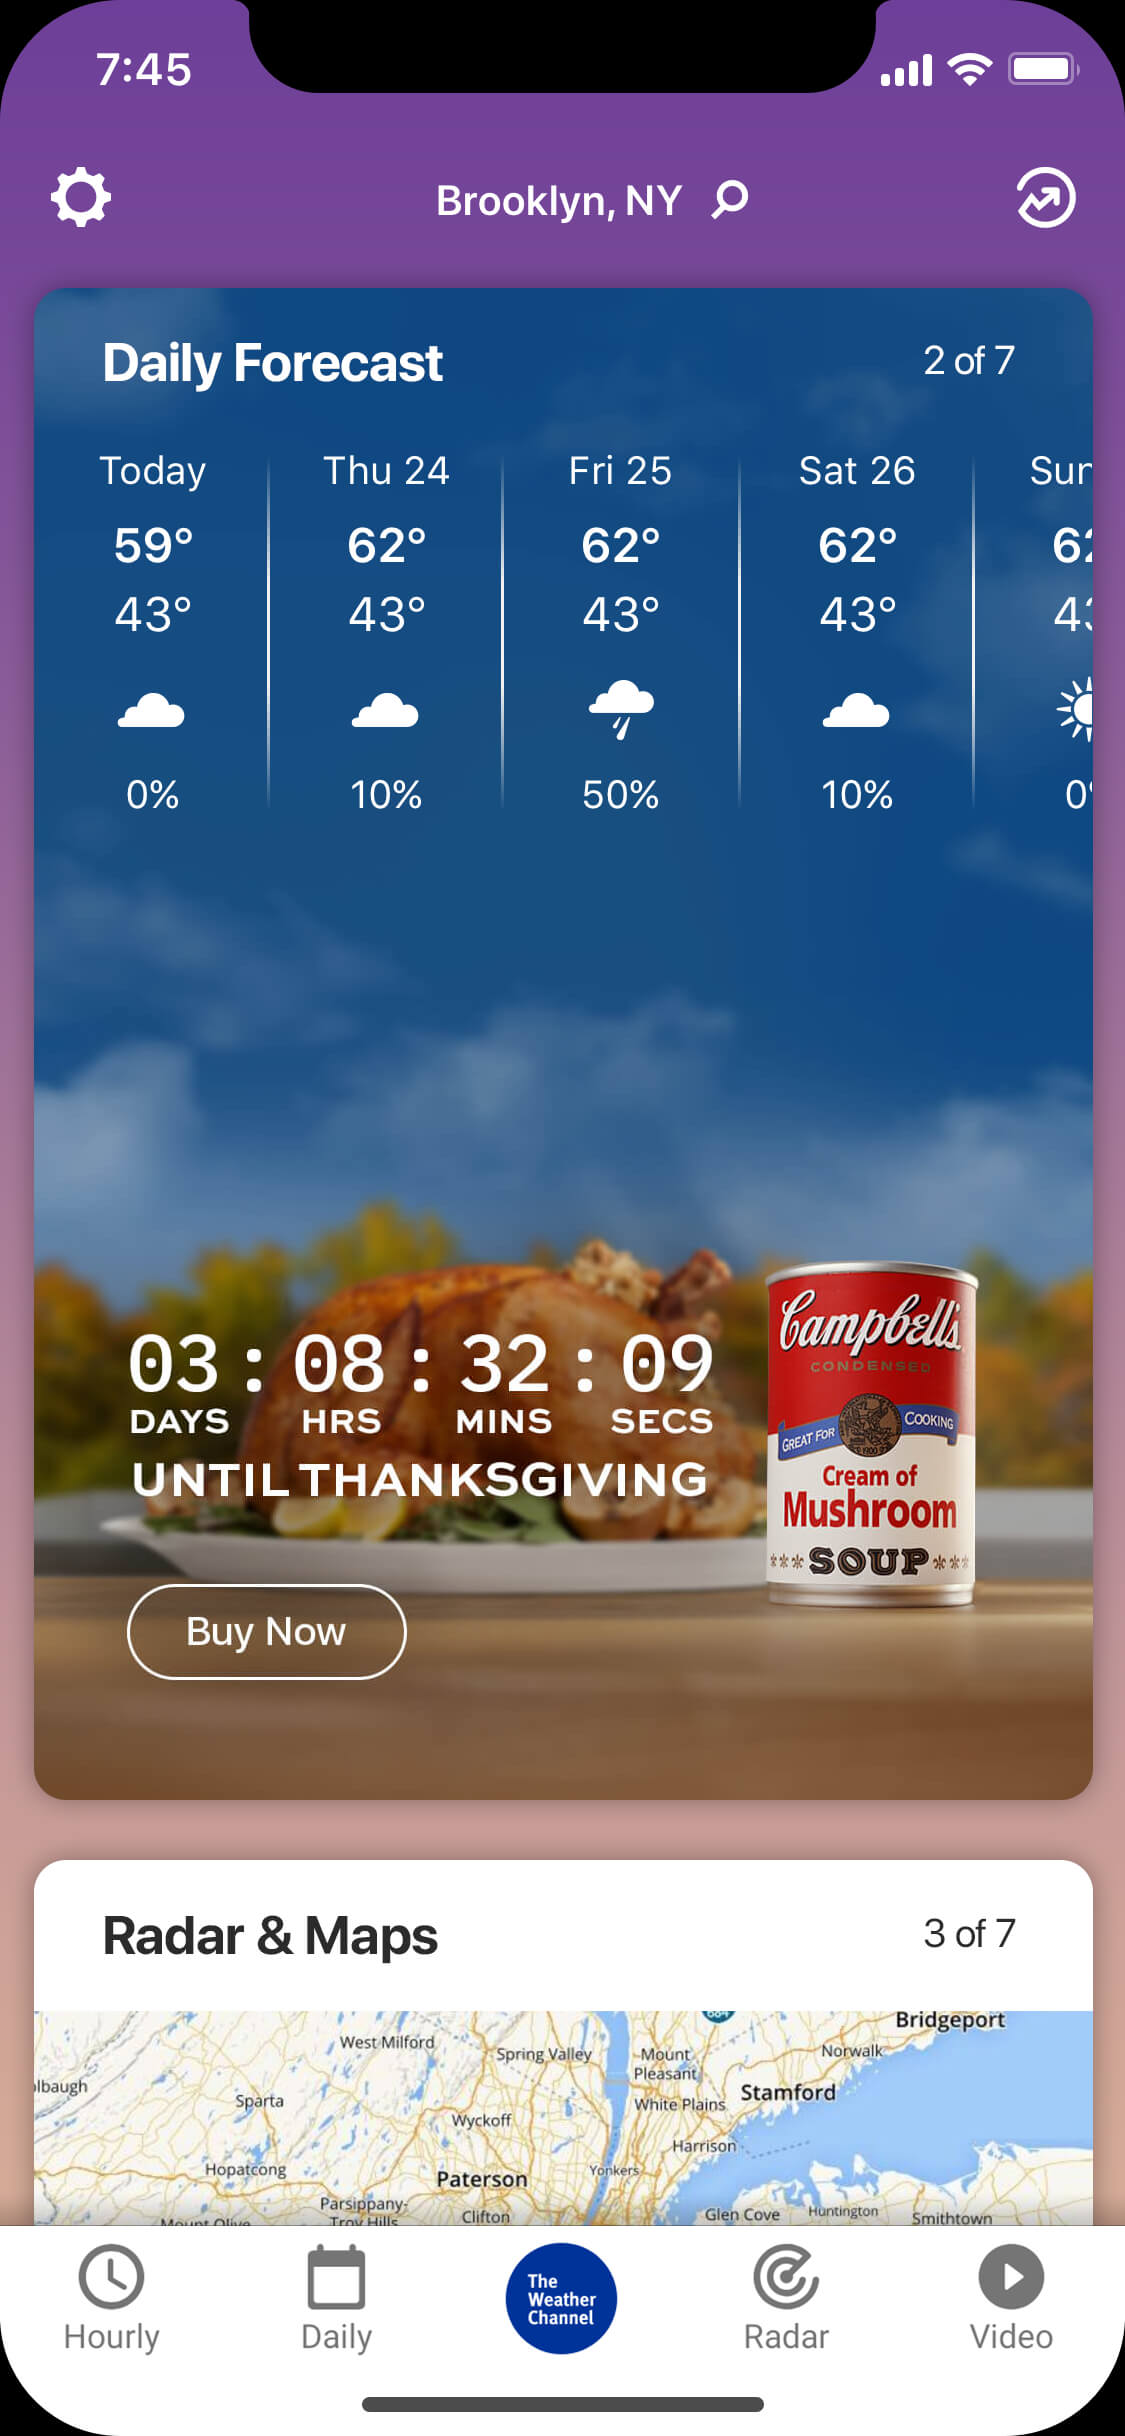 campbells-thx-if_cloudy-day